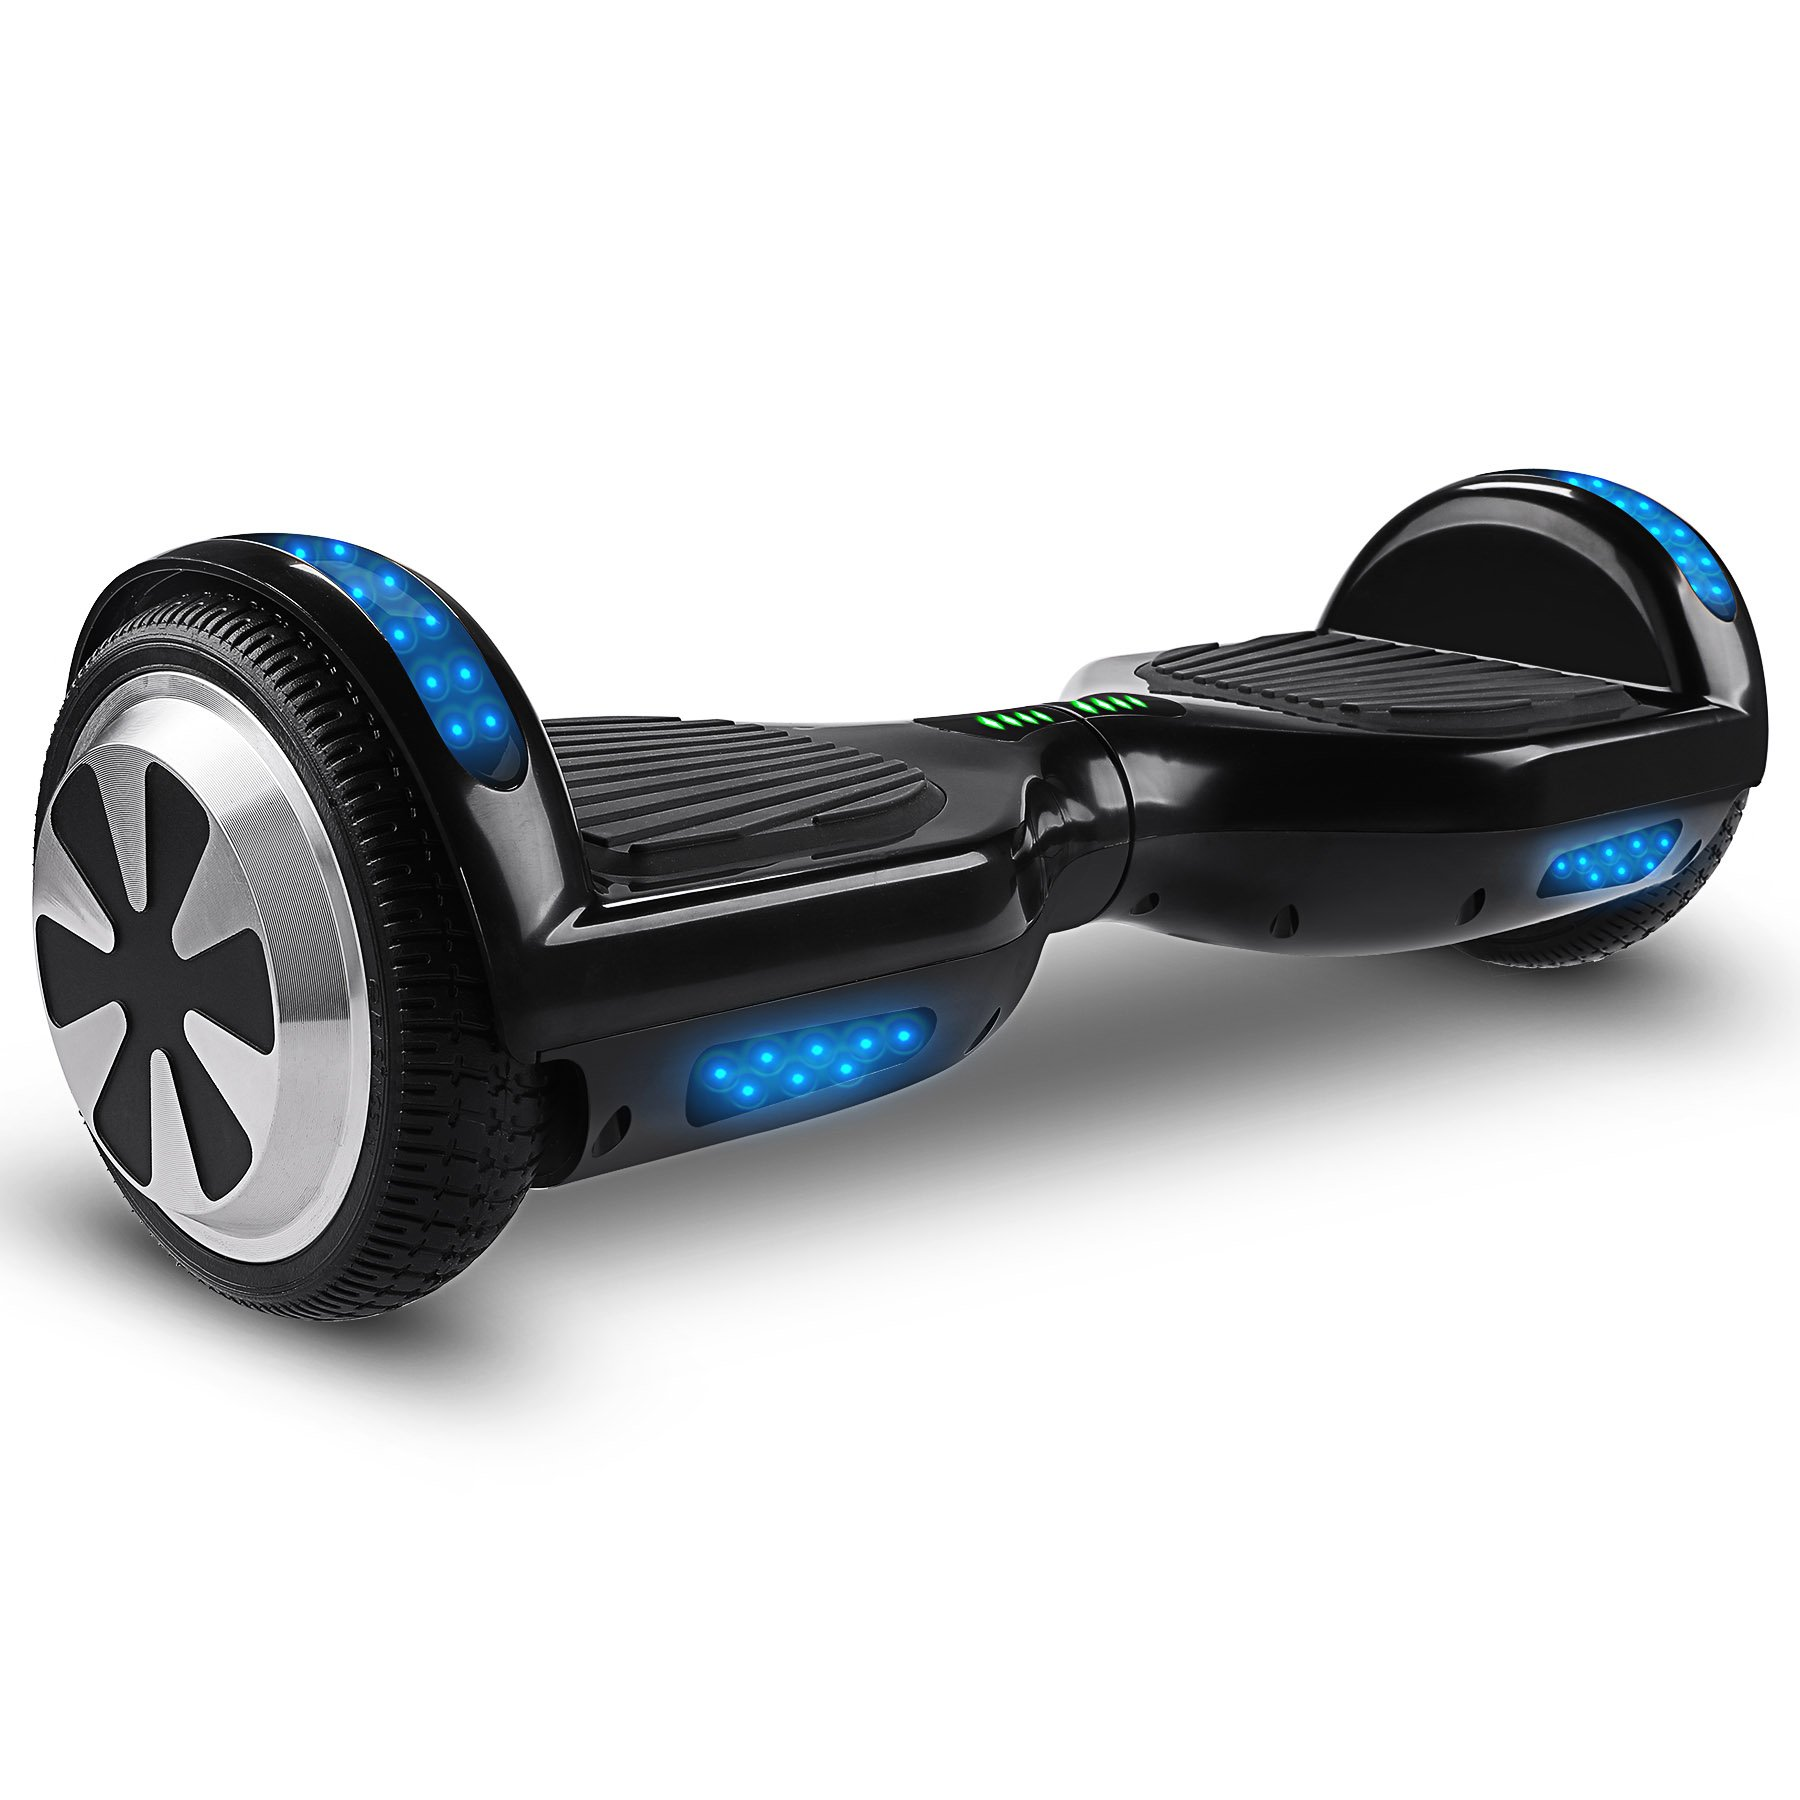 OrionMotorTech Hoverboard UL2272 Certified, Smart Self Balancing Scooter with Bluetooth Speaker & Flash LED Indicator Lights 6.5'' Two-Wheels (Black)